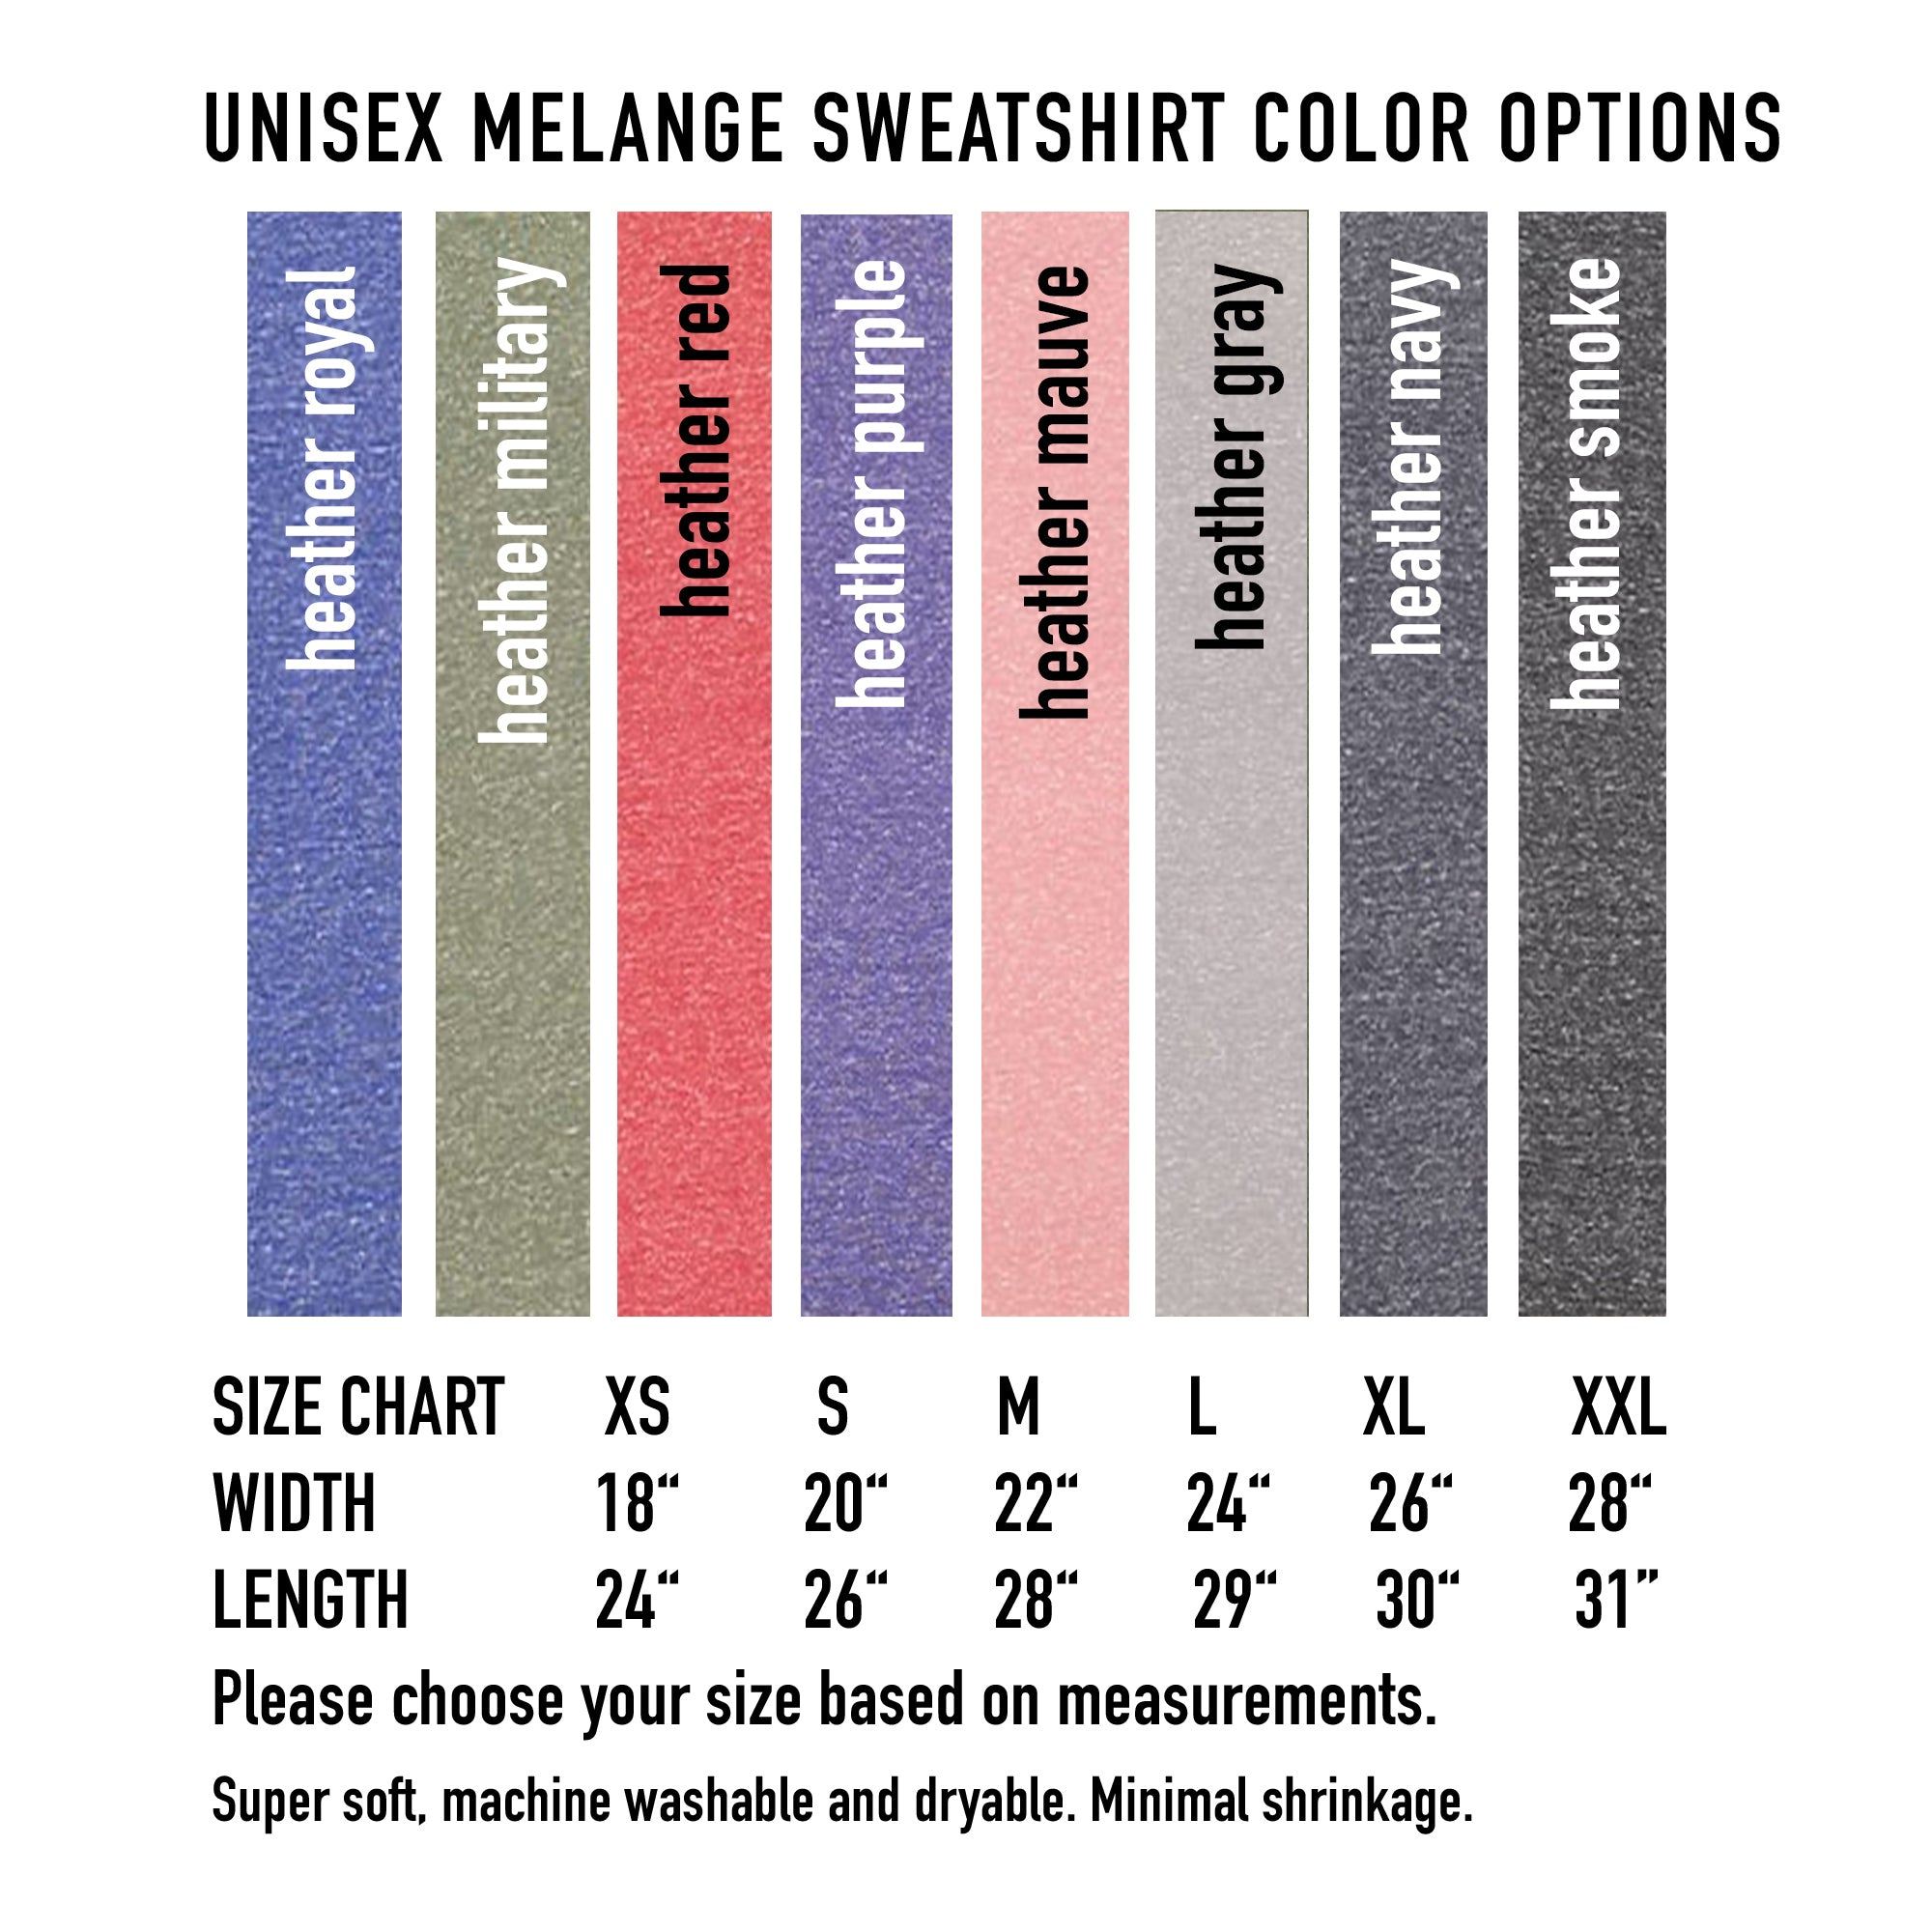 I'm speaking : Unisex Melange Sweatshirt